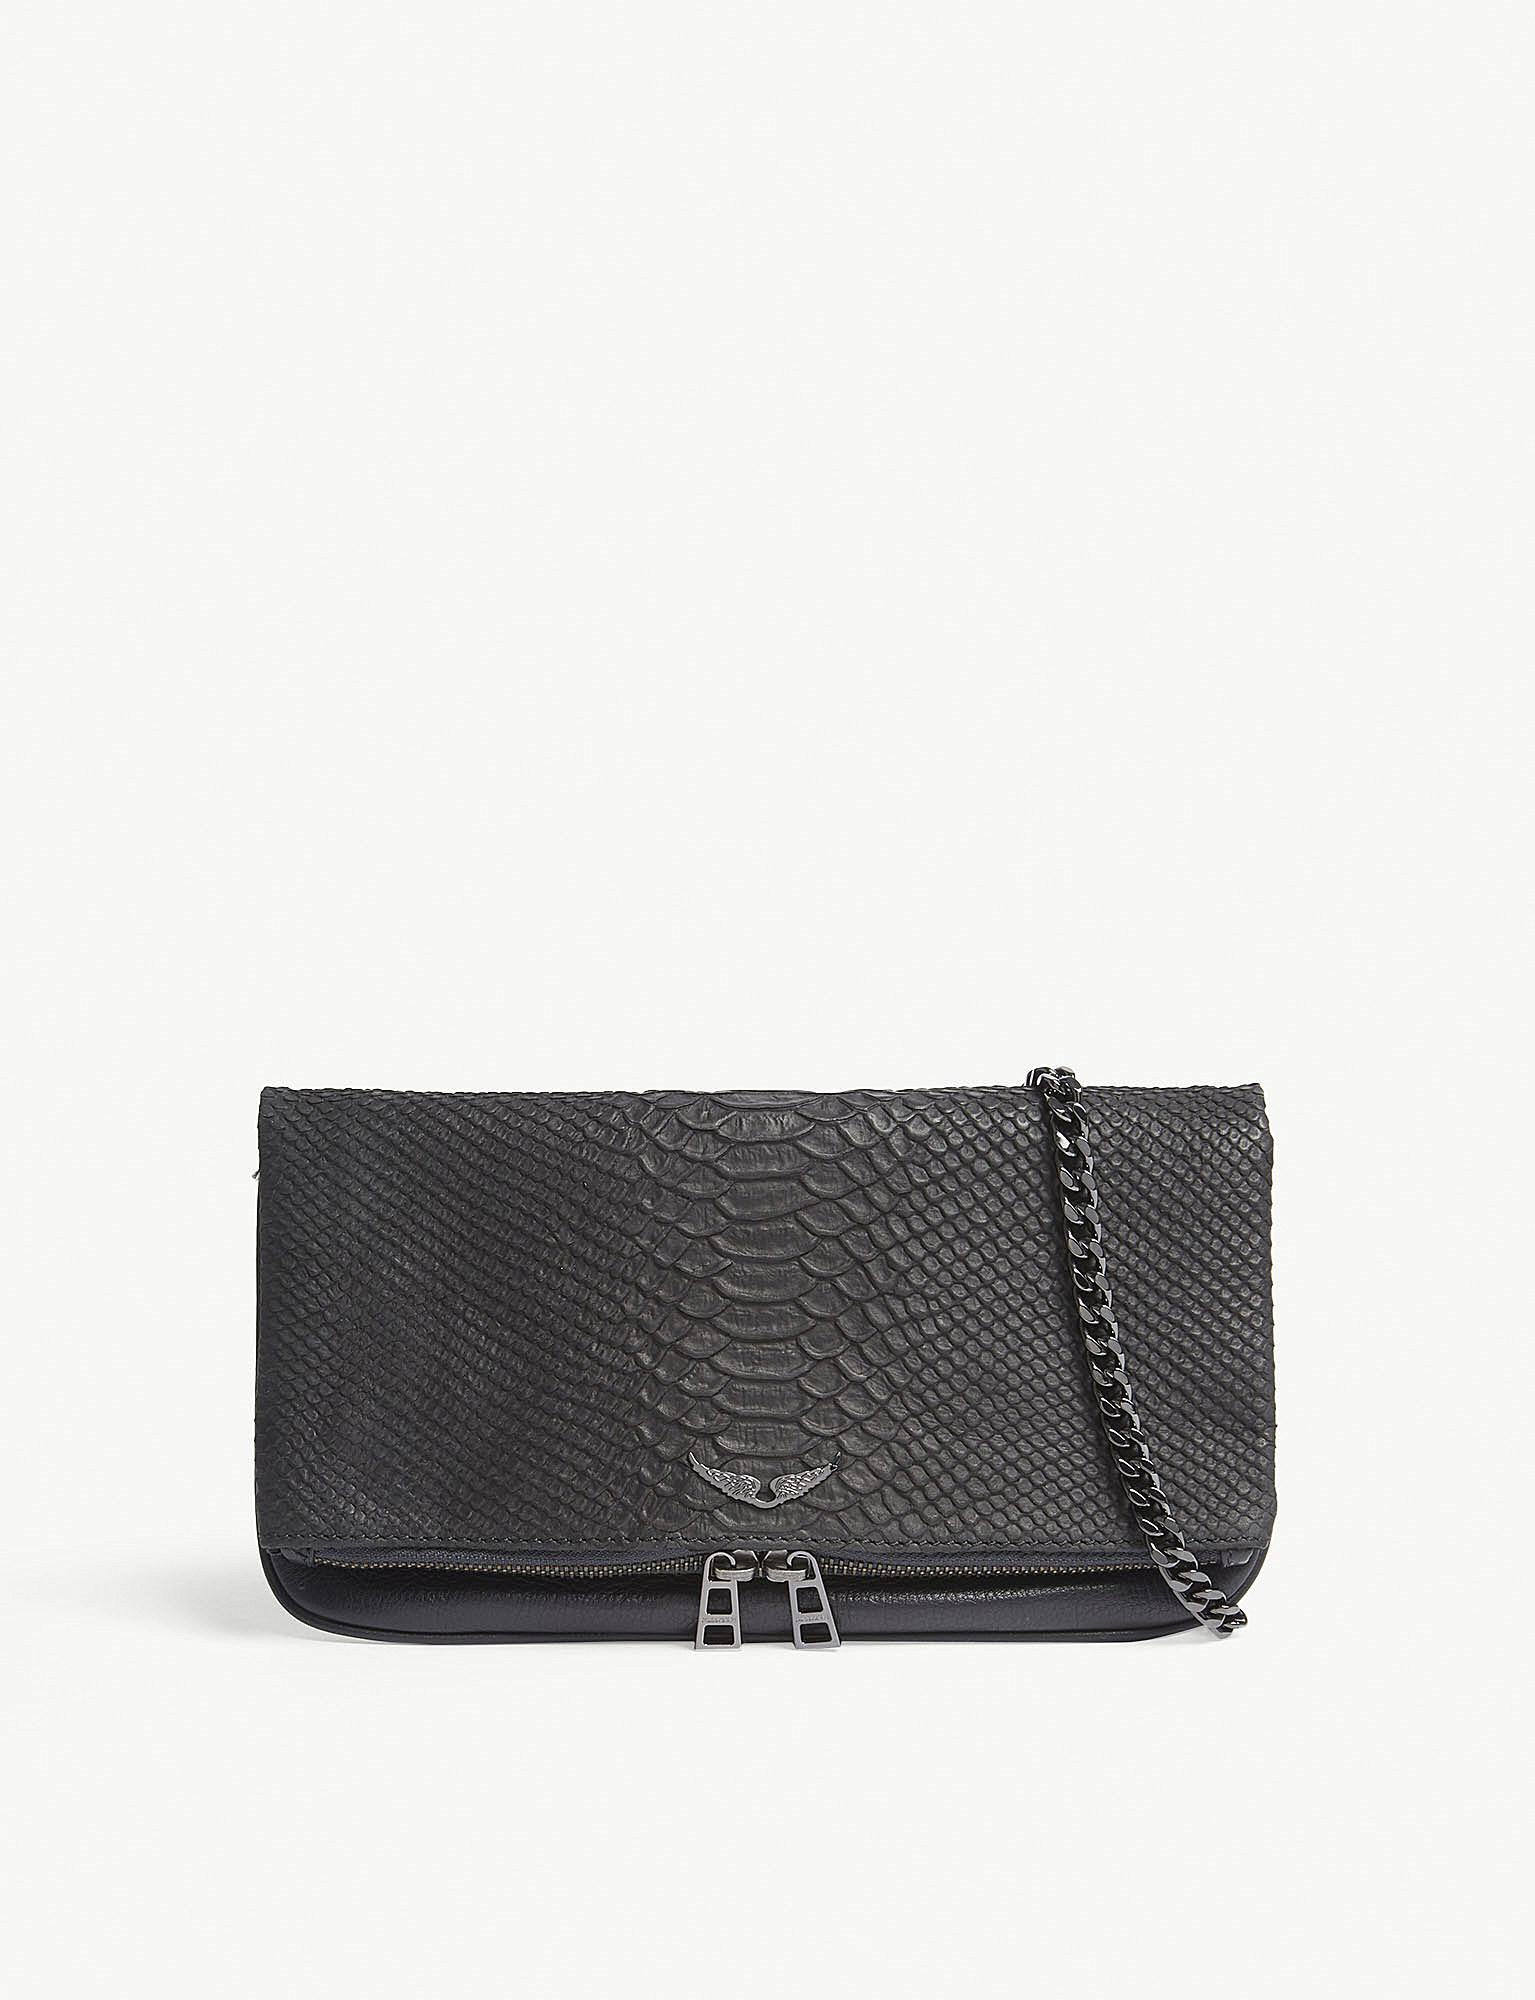 cdf771ffd Gallery. Previously sold at: Selfridges · Women's Metallic Clutch Bags